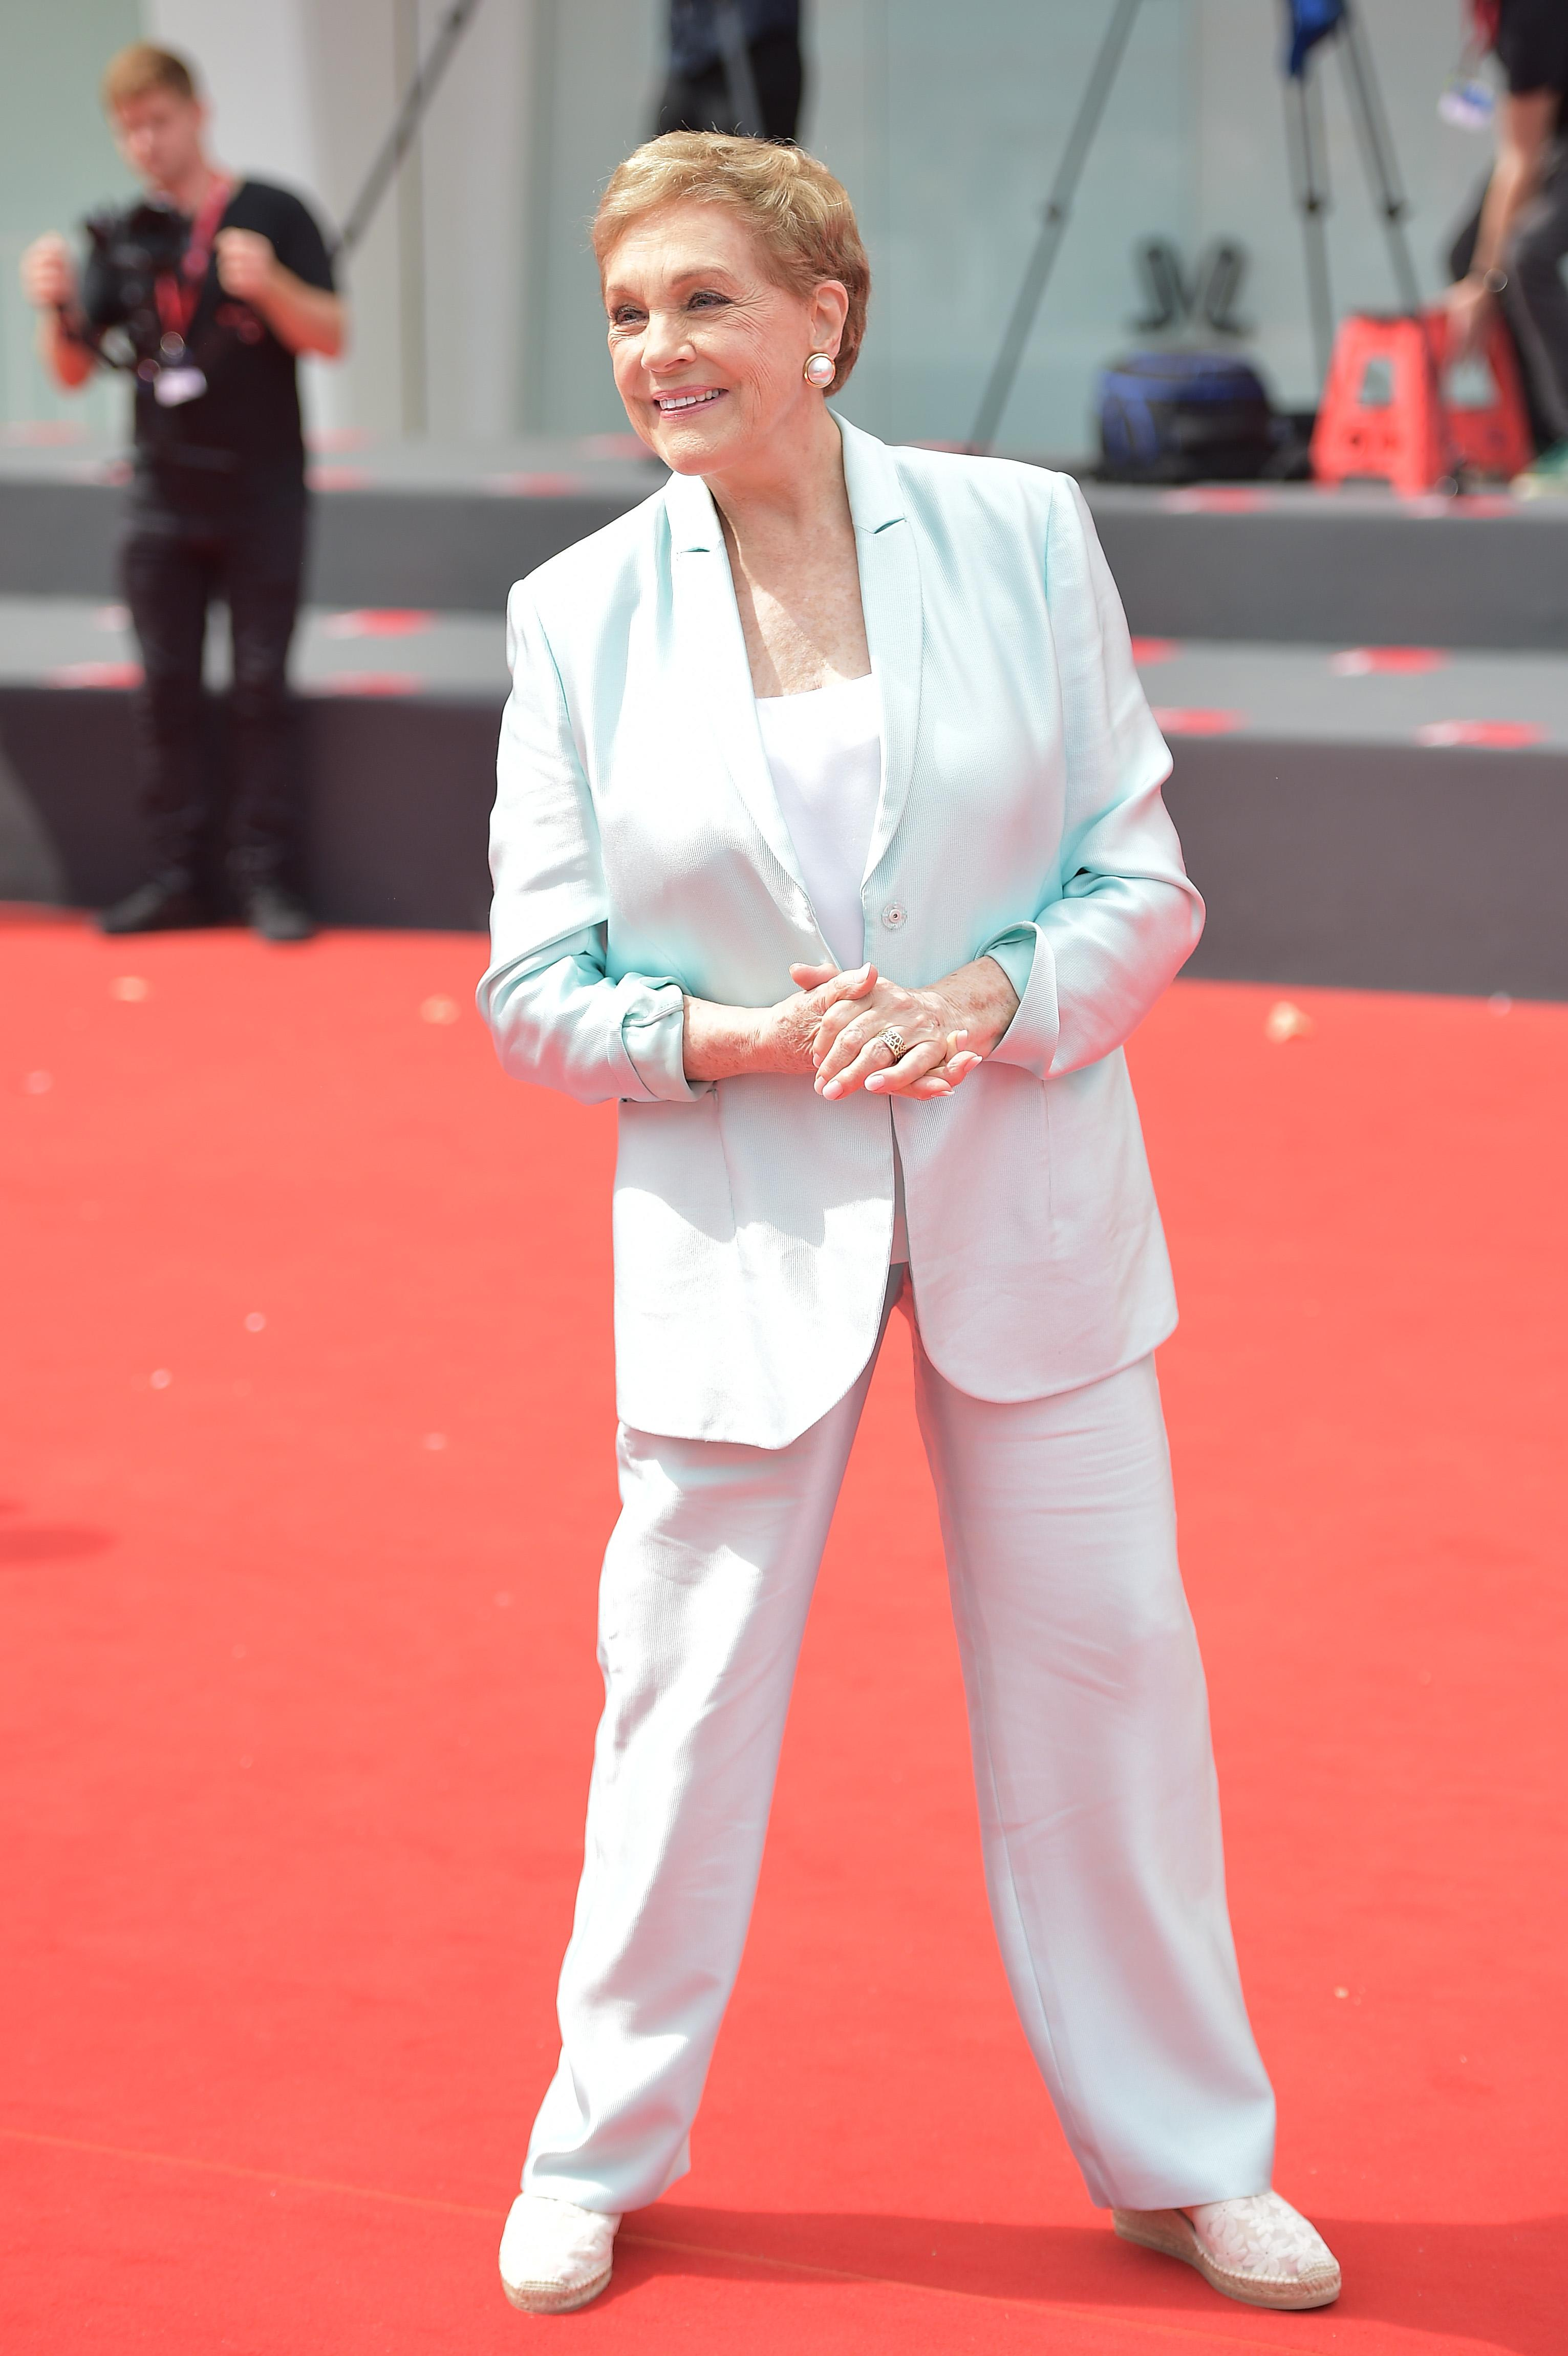 Julie Andrews arrives to be awarded the Golden Lion for Lifetime Achievement during the 76th Venice Film Festival [Photo: Getty Images]